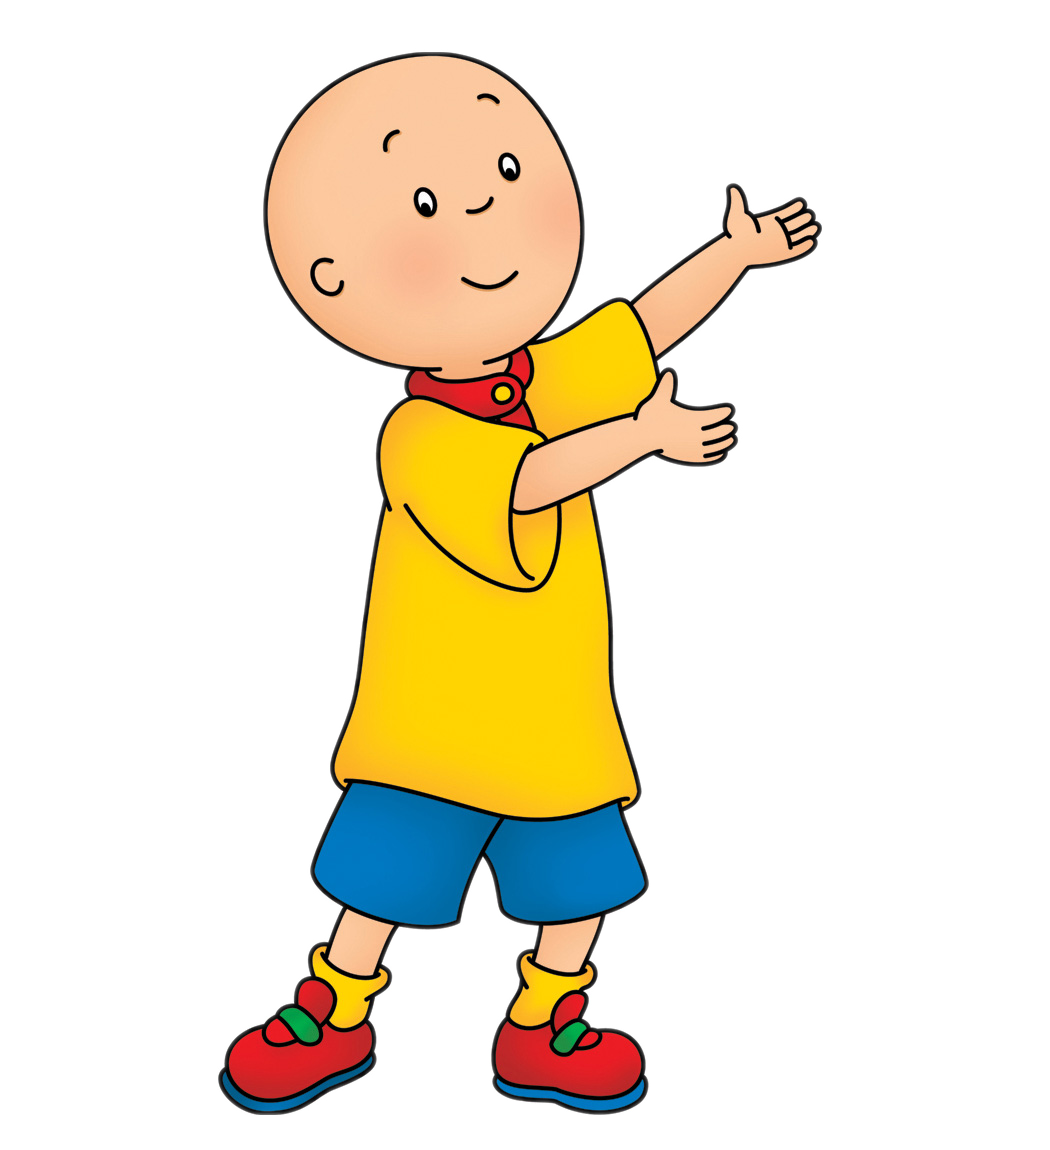 Cartoon Characters Pictures : Cartoon characters new character png pictures